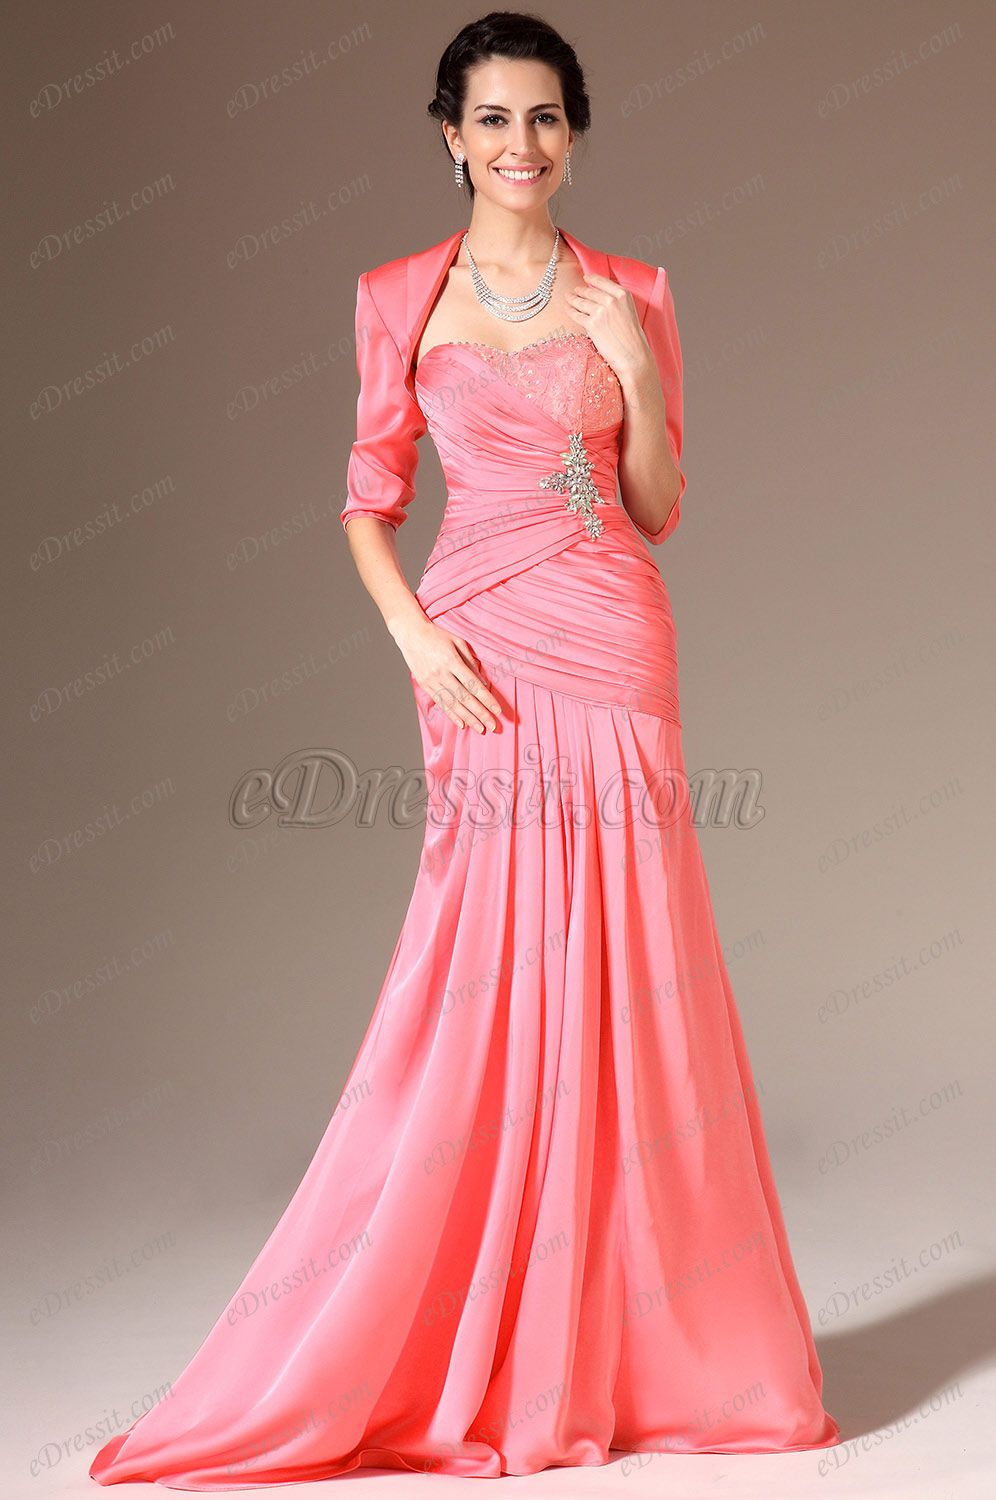 eDressit 2014 New Coral Beaded Two-Piece Mother of the Bride Dress ...